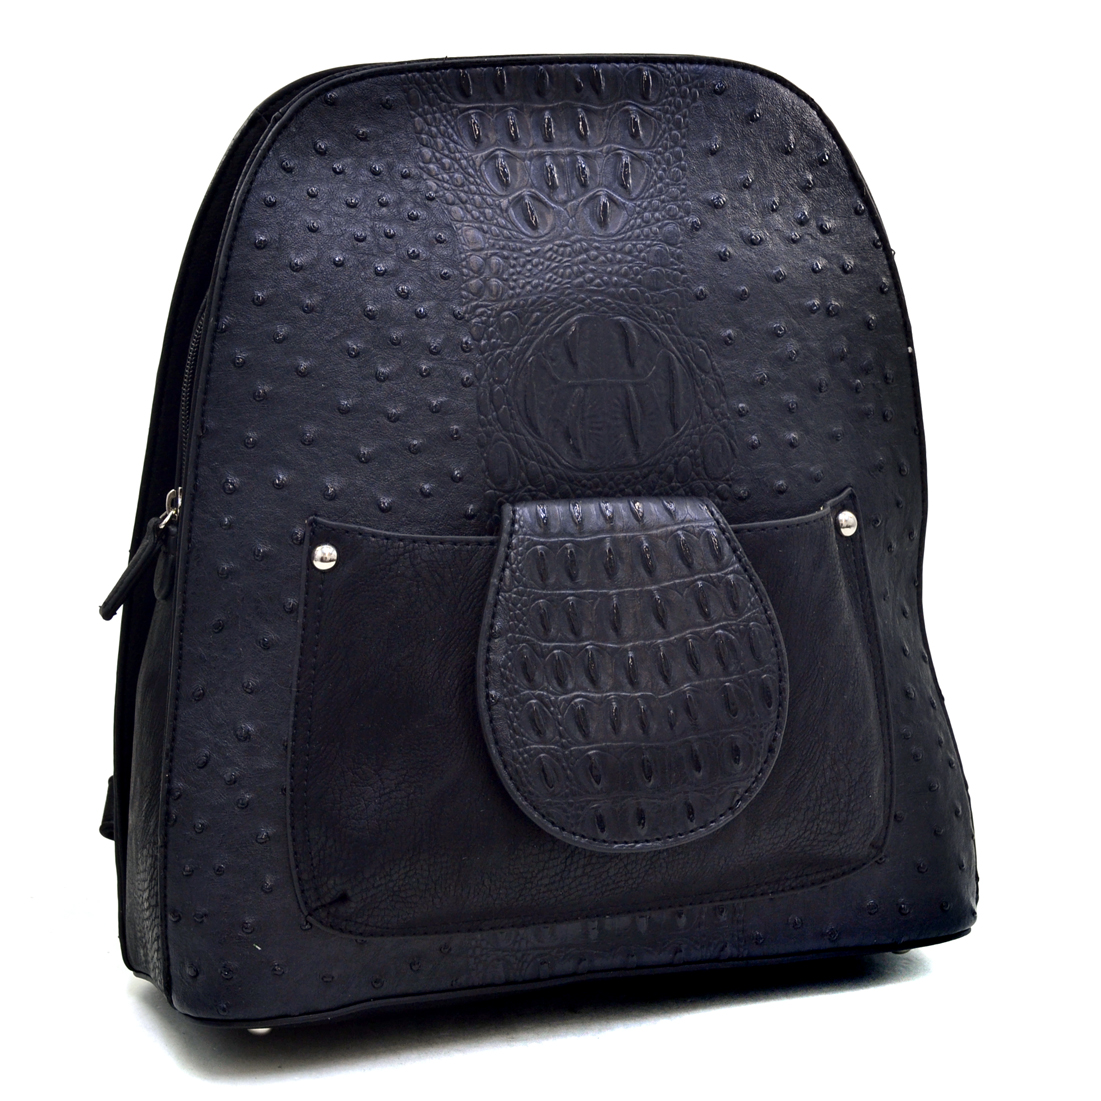 Dasein® Ostrich and Croco Fushion Textu Mini Backpack